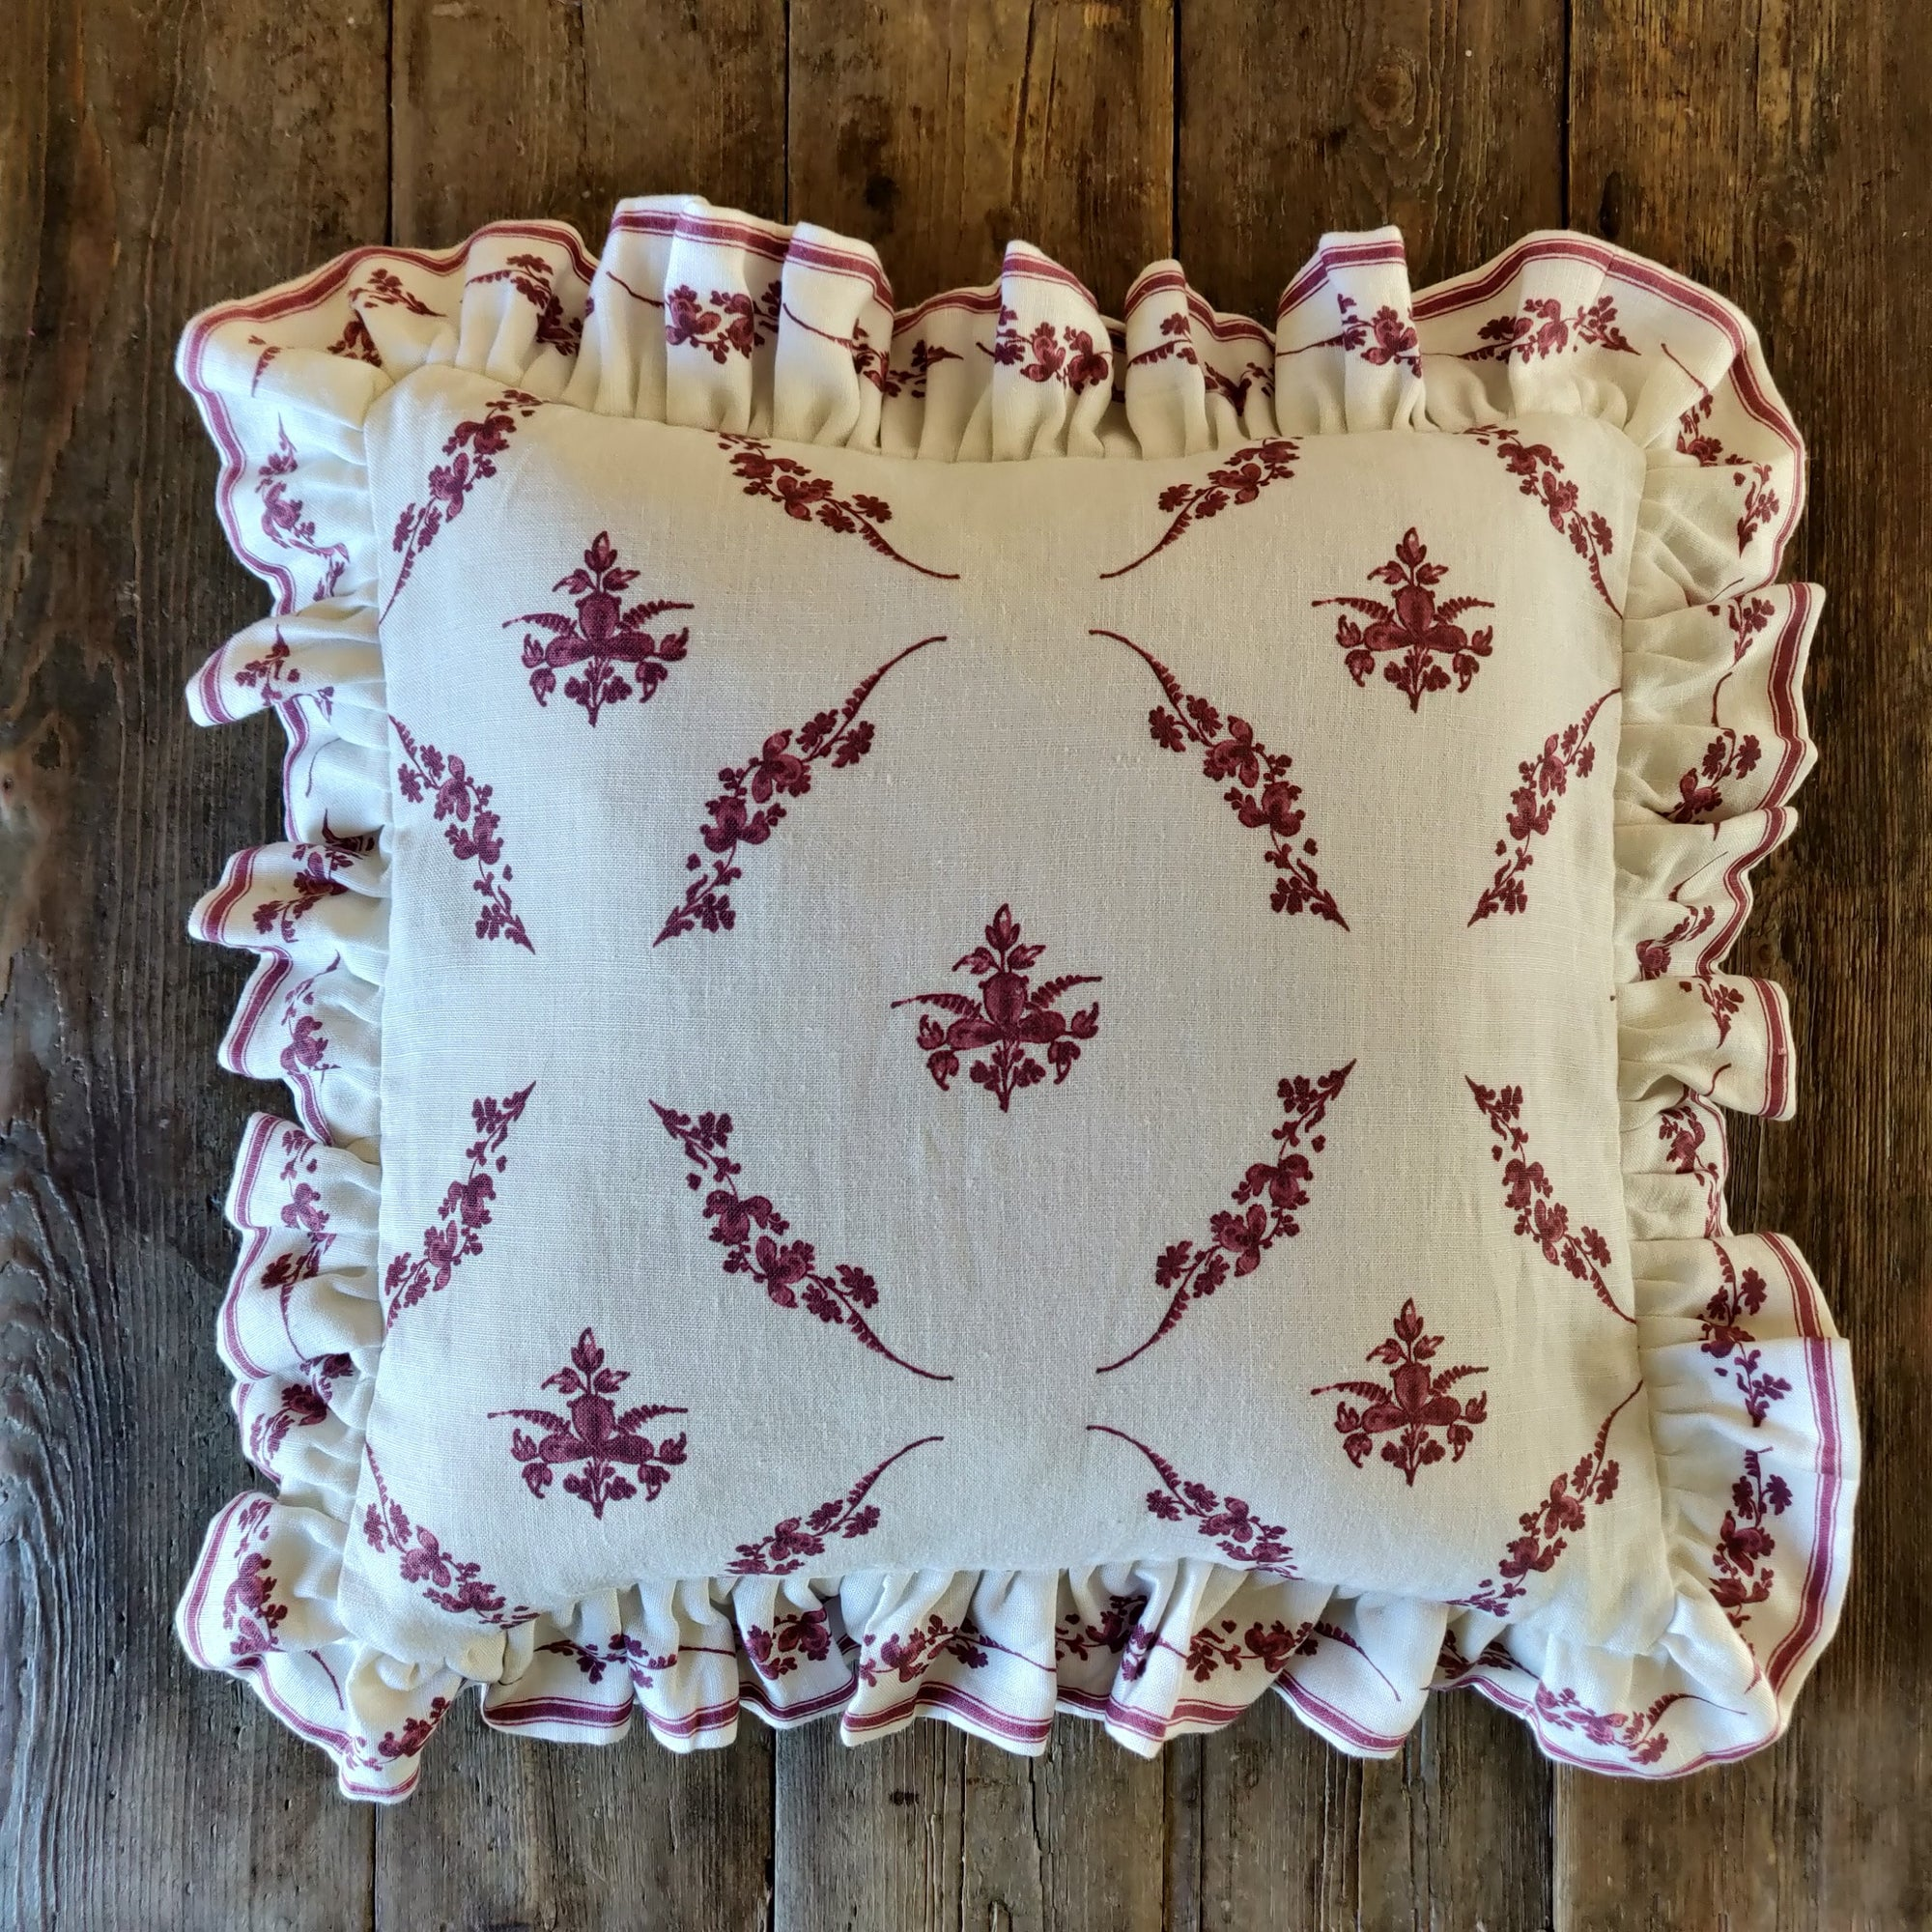 Trifolium Hero Frill Cushion/ Wreath Raspberry on Ivory